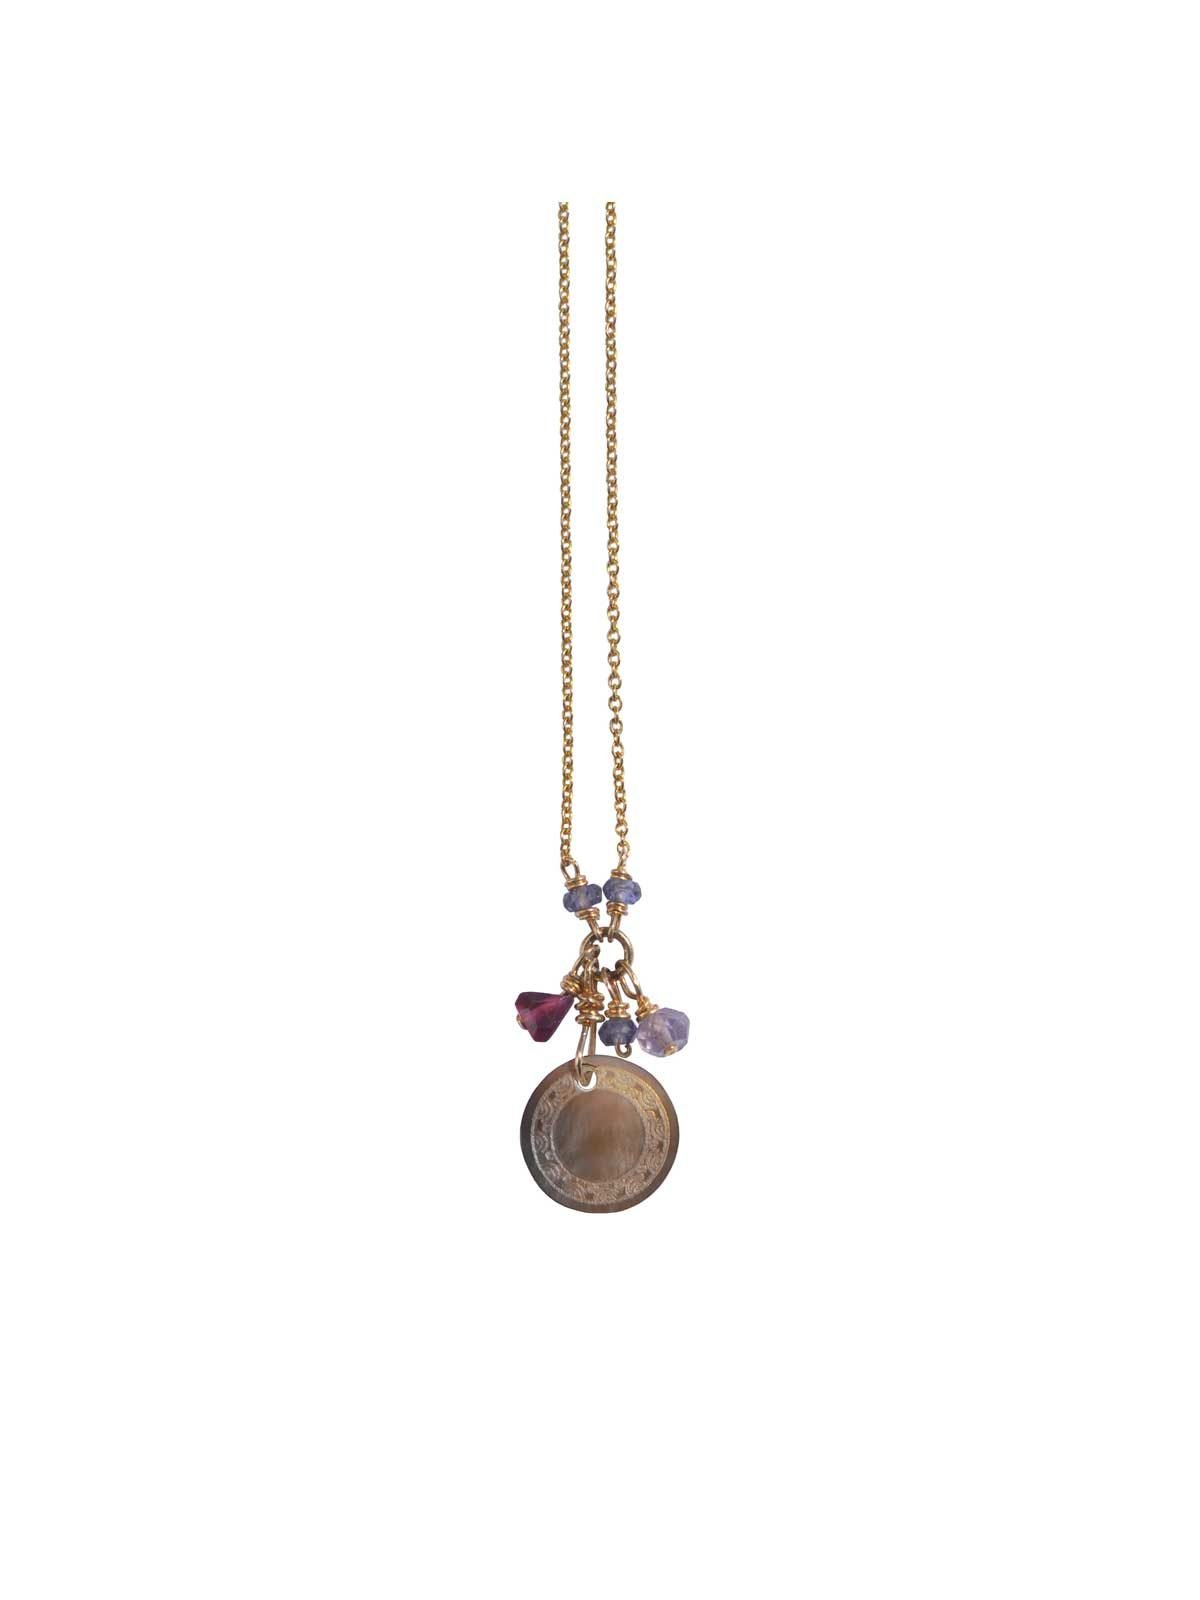 Mousheka Lila Necklace Gold mother-of-pearl Garnet Iolite Amethyst